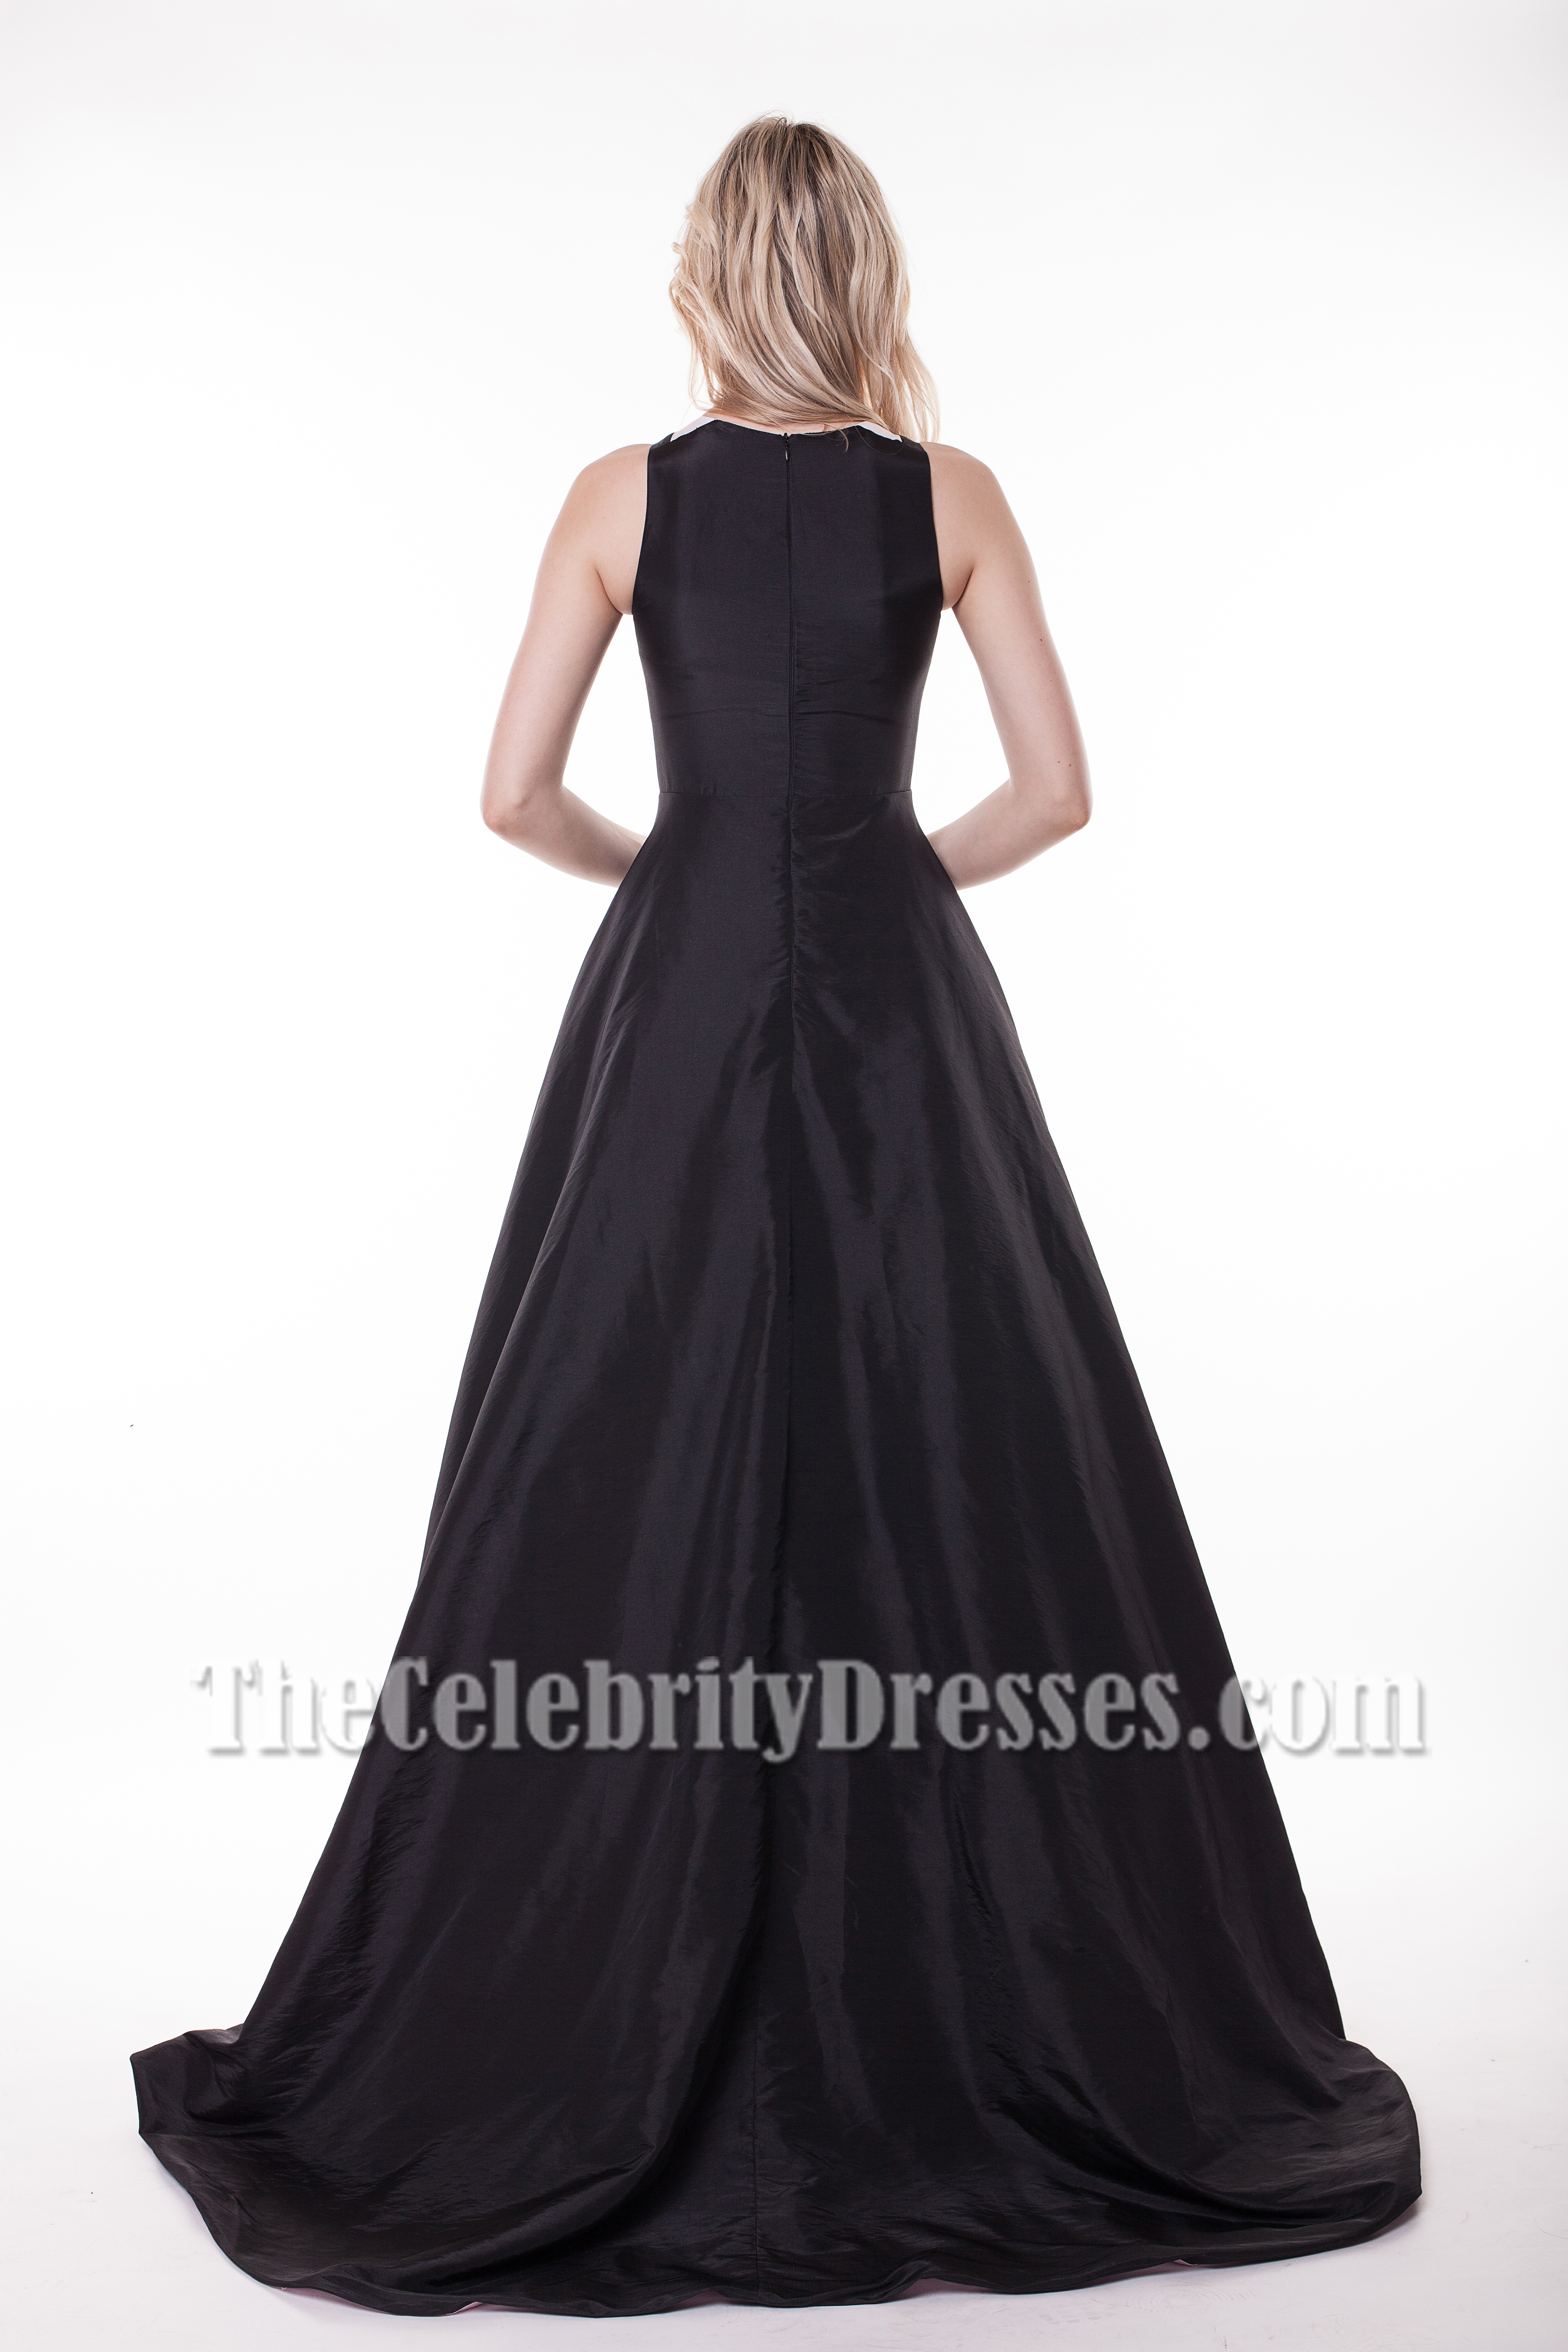 Classic White And Black A-Line Formal Dress Evening Gowns ...